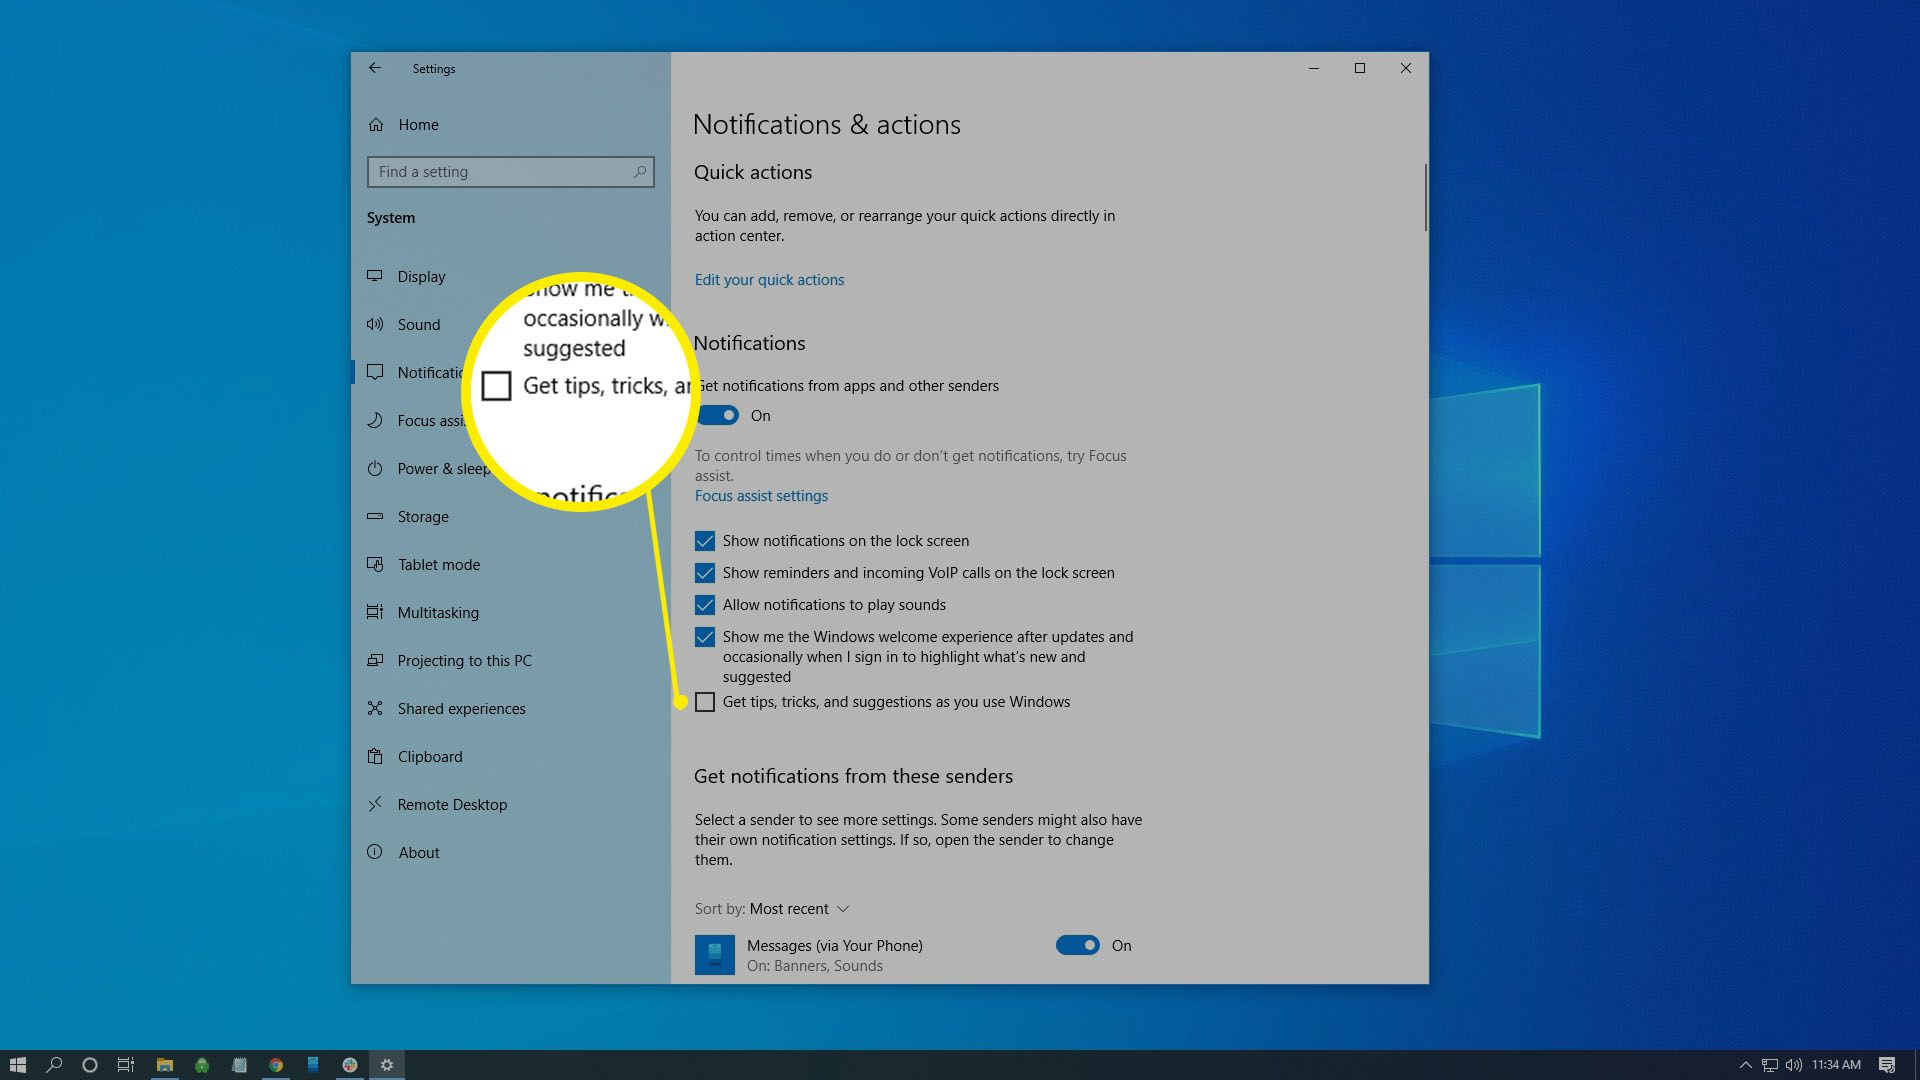 Select Notifications & actions in the left pane, then scroll down and set the toggle switch under Get tips, tricks, and suggestions as you use Windows to Off.